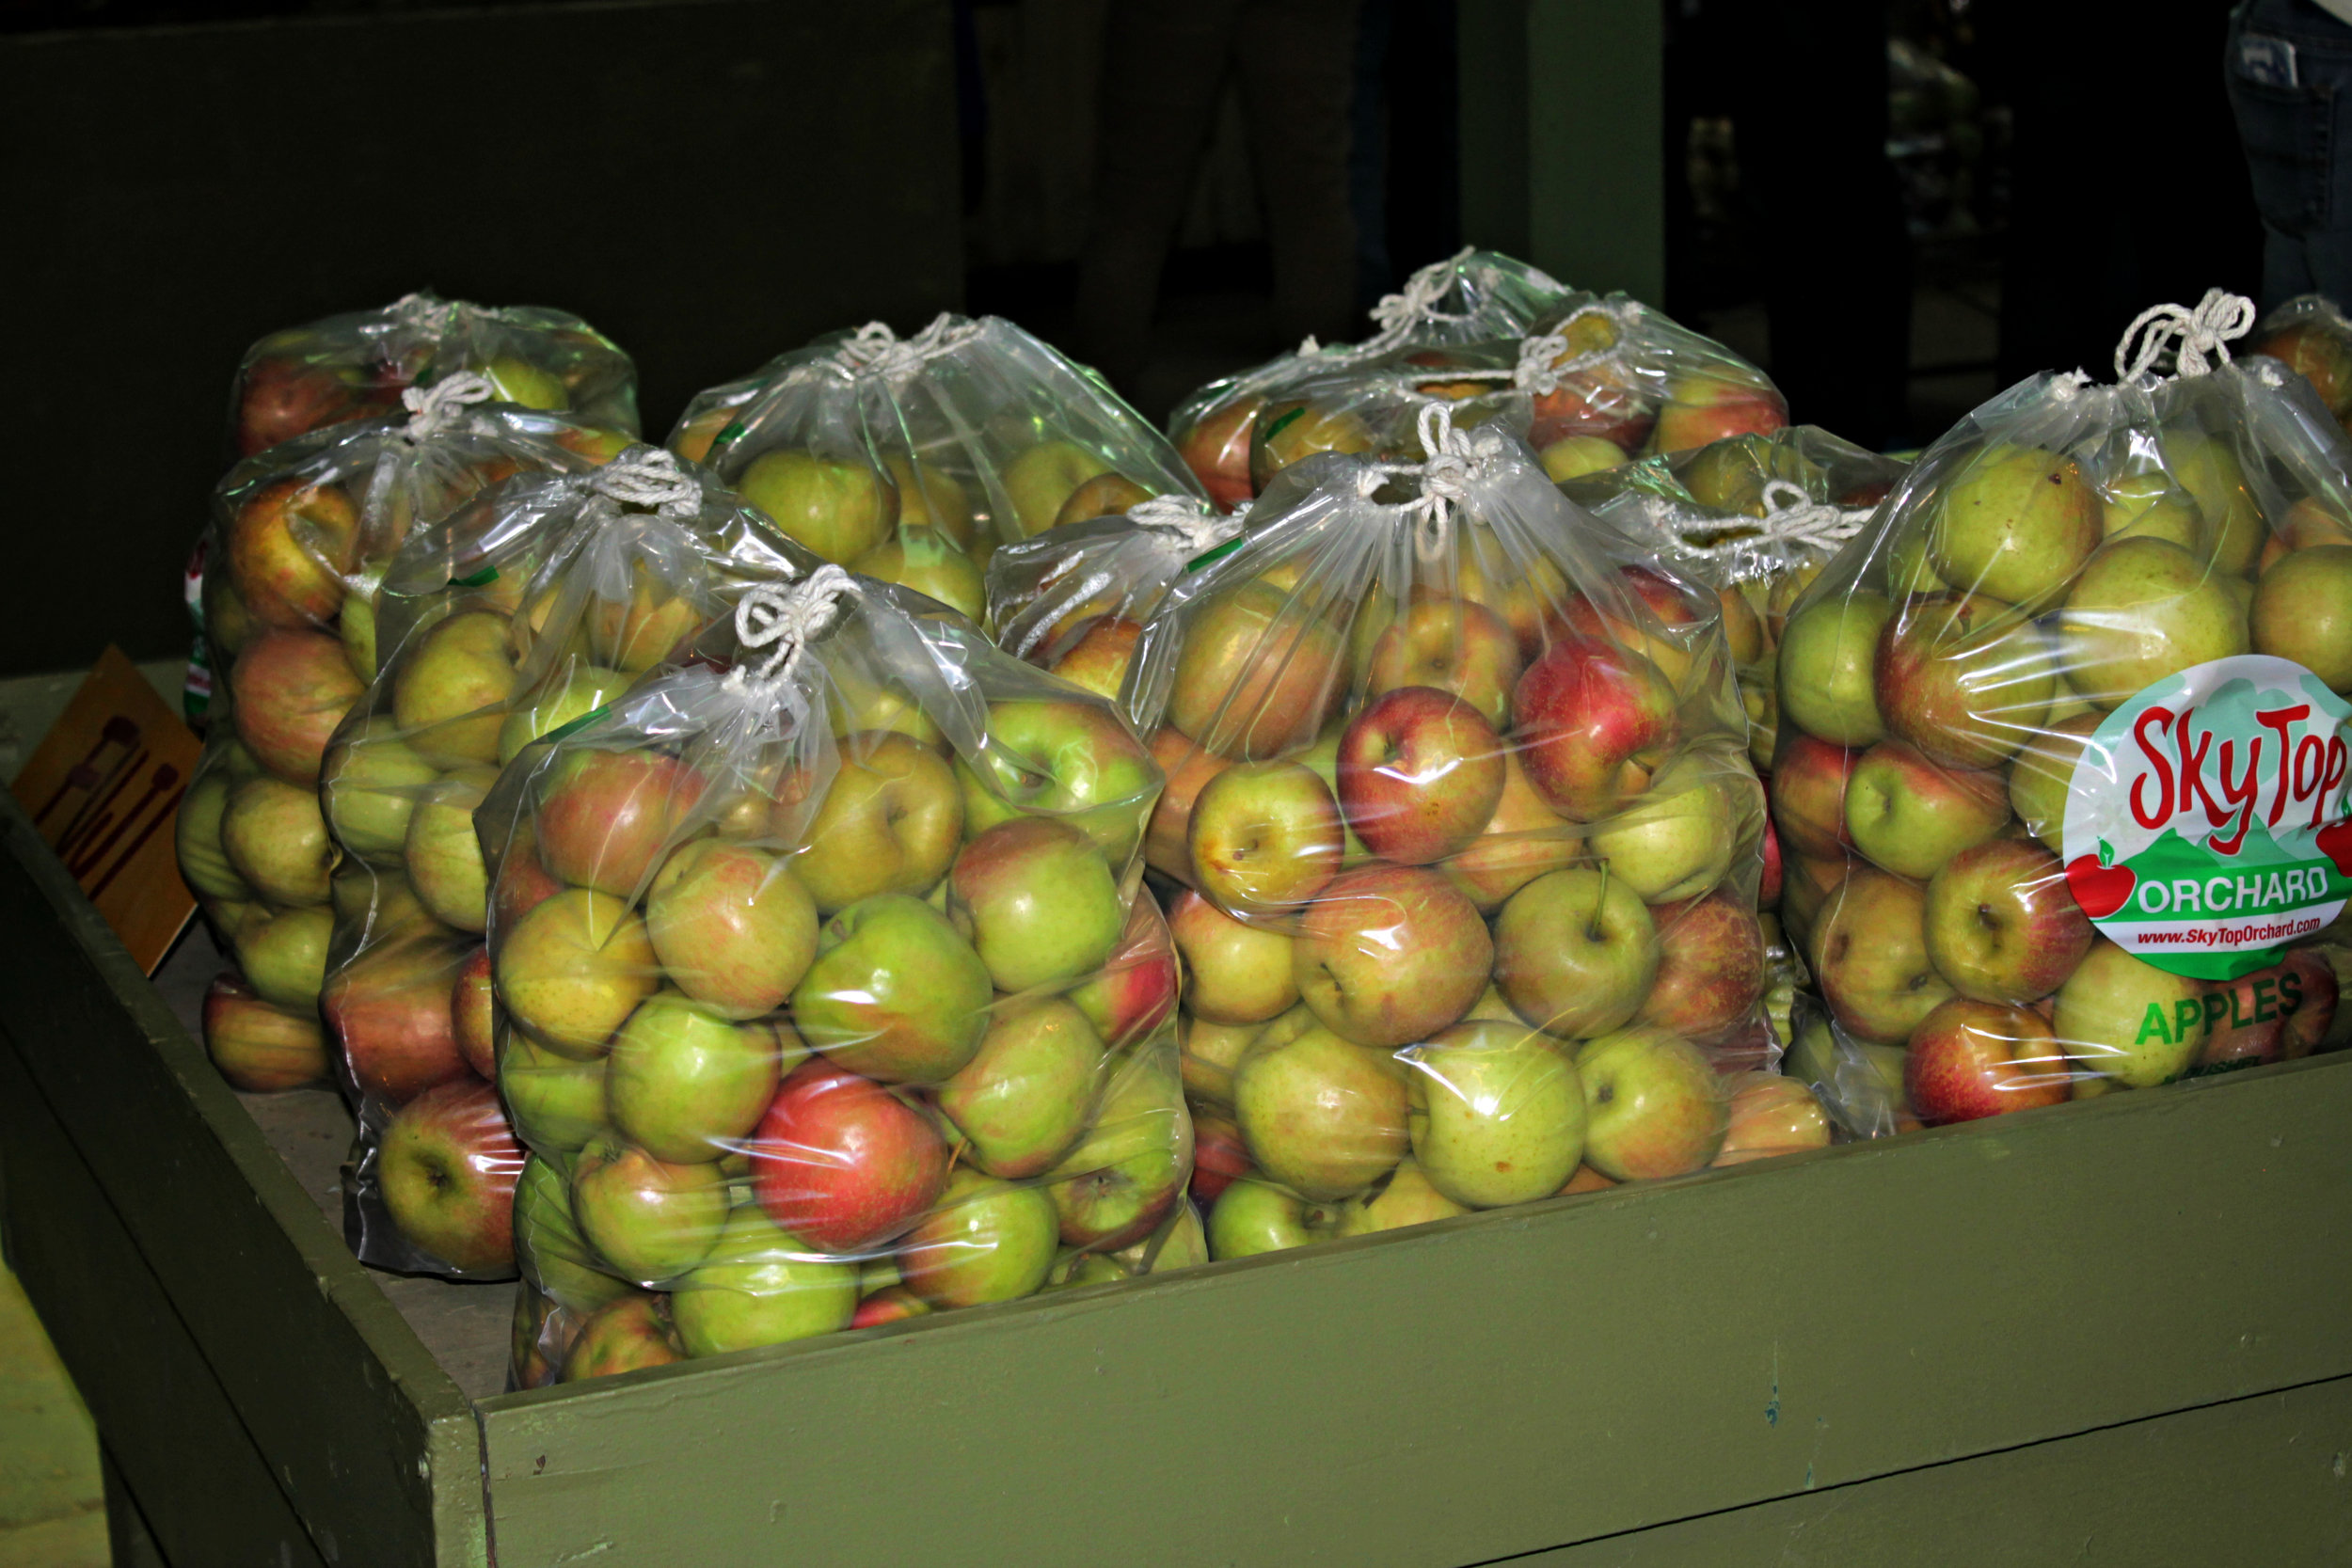 Above is an image of pre-made apple bags that can be bought if there is no time to pick personally. These bags are priced at $20.